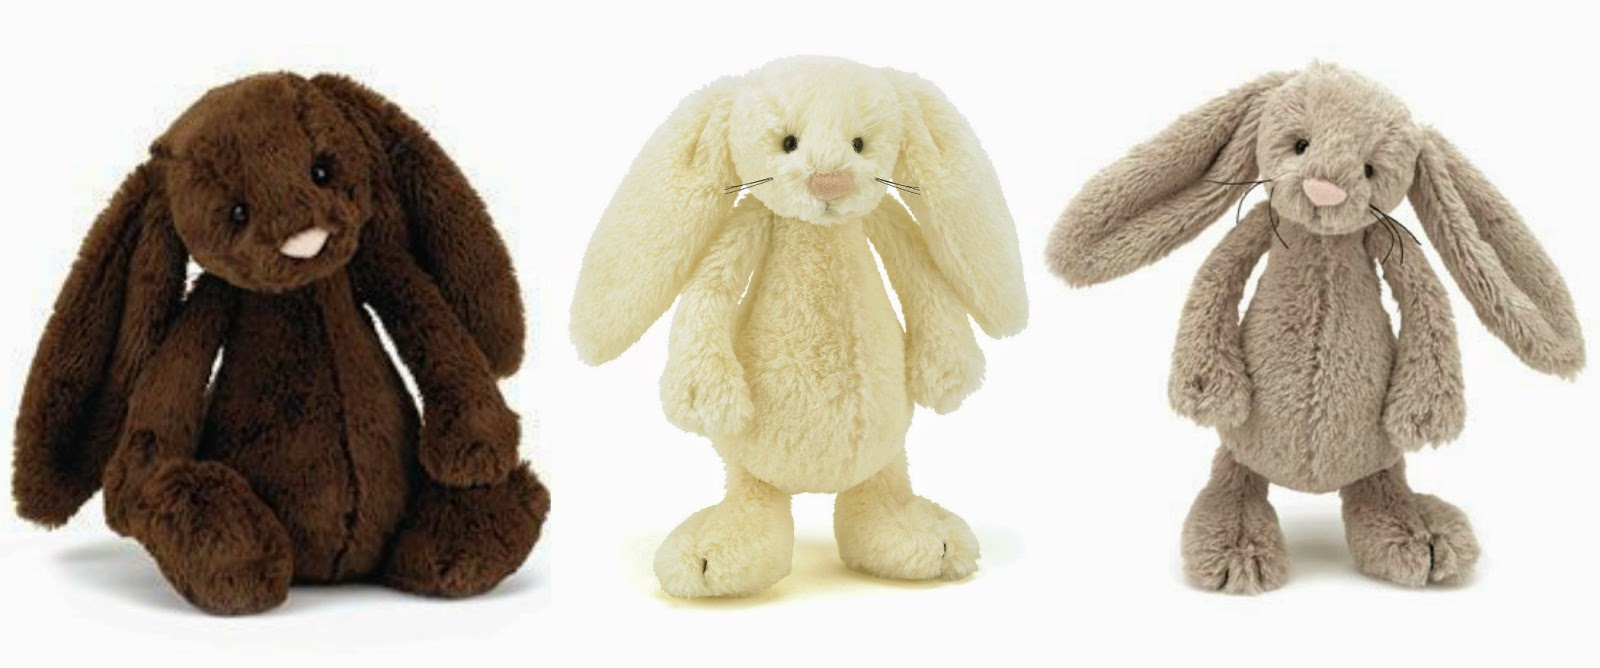 Jellycat plush bunnies